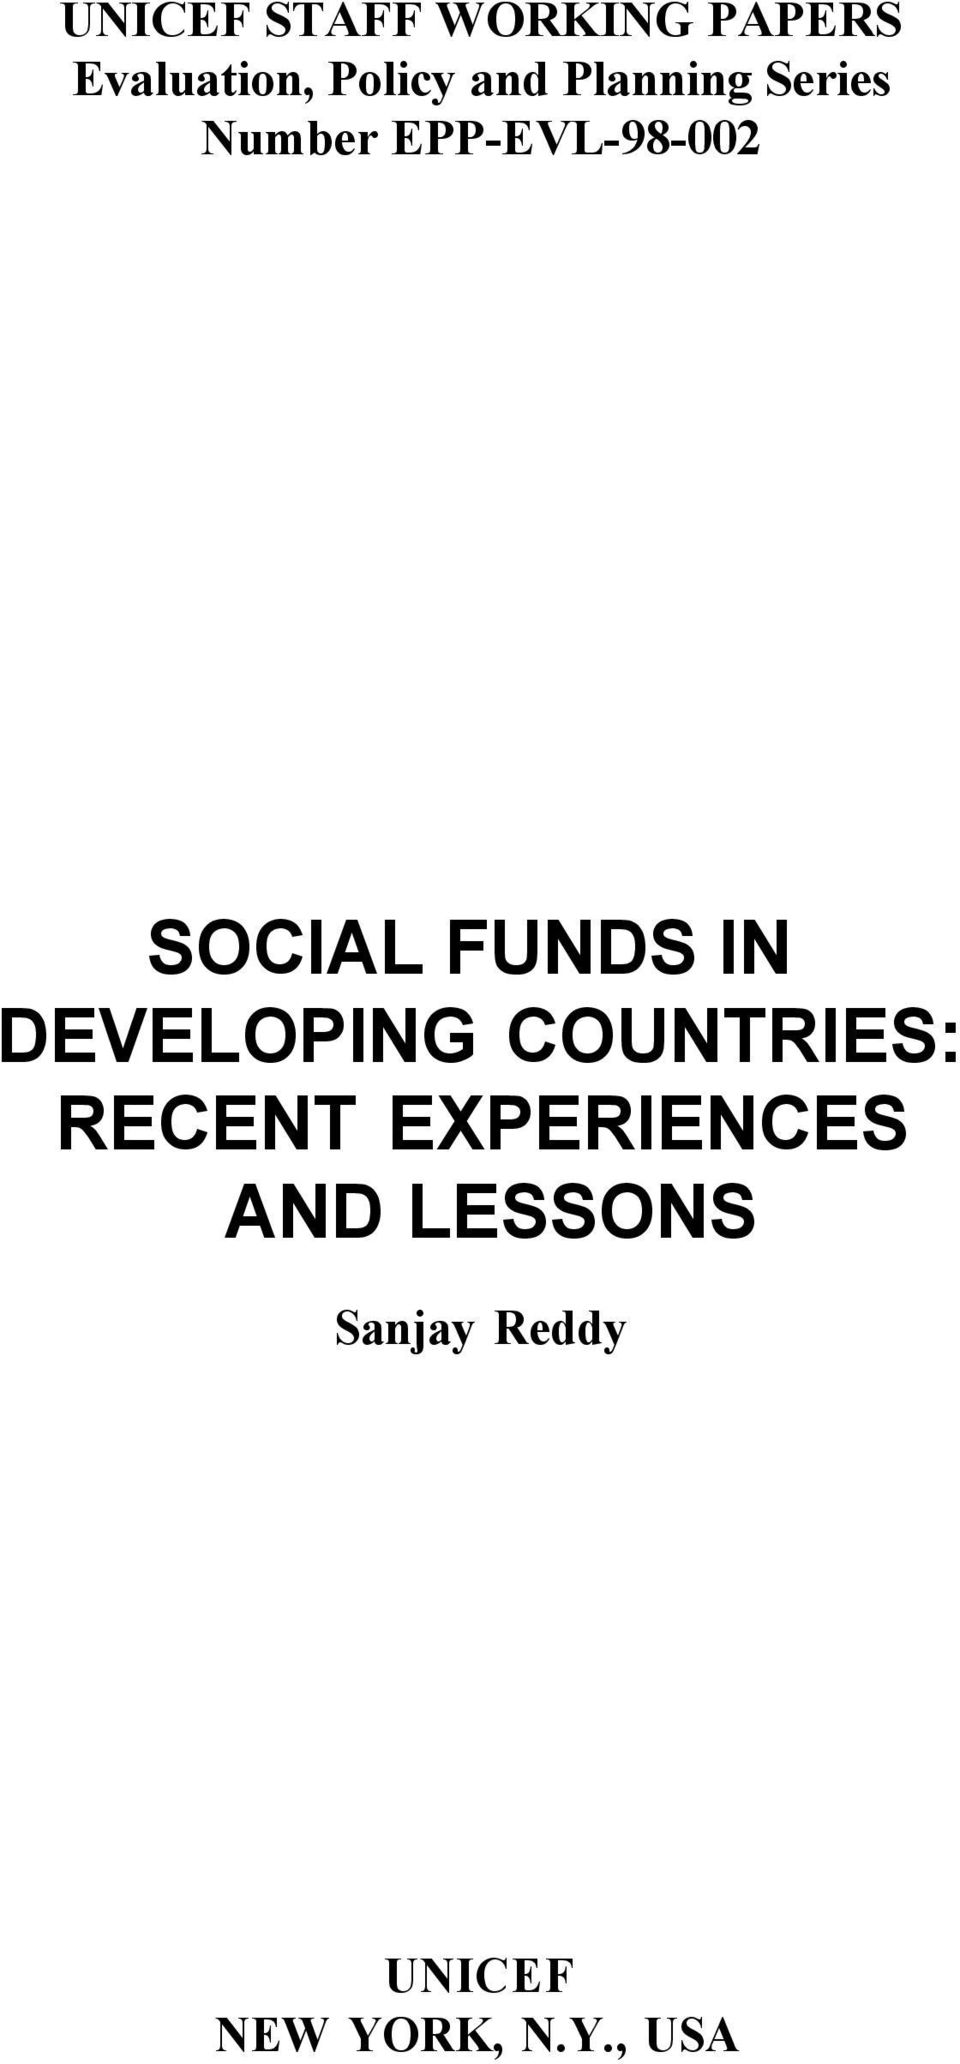 FUNDS IN DEVELOPING COUNTRIES: RECENT EXPERIENCES